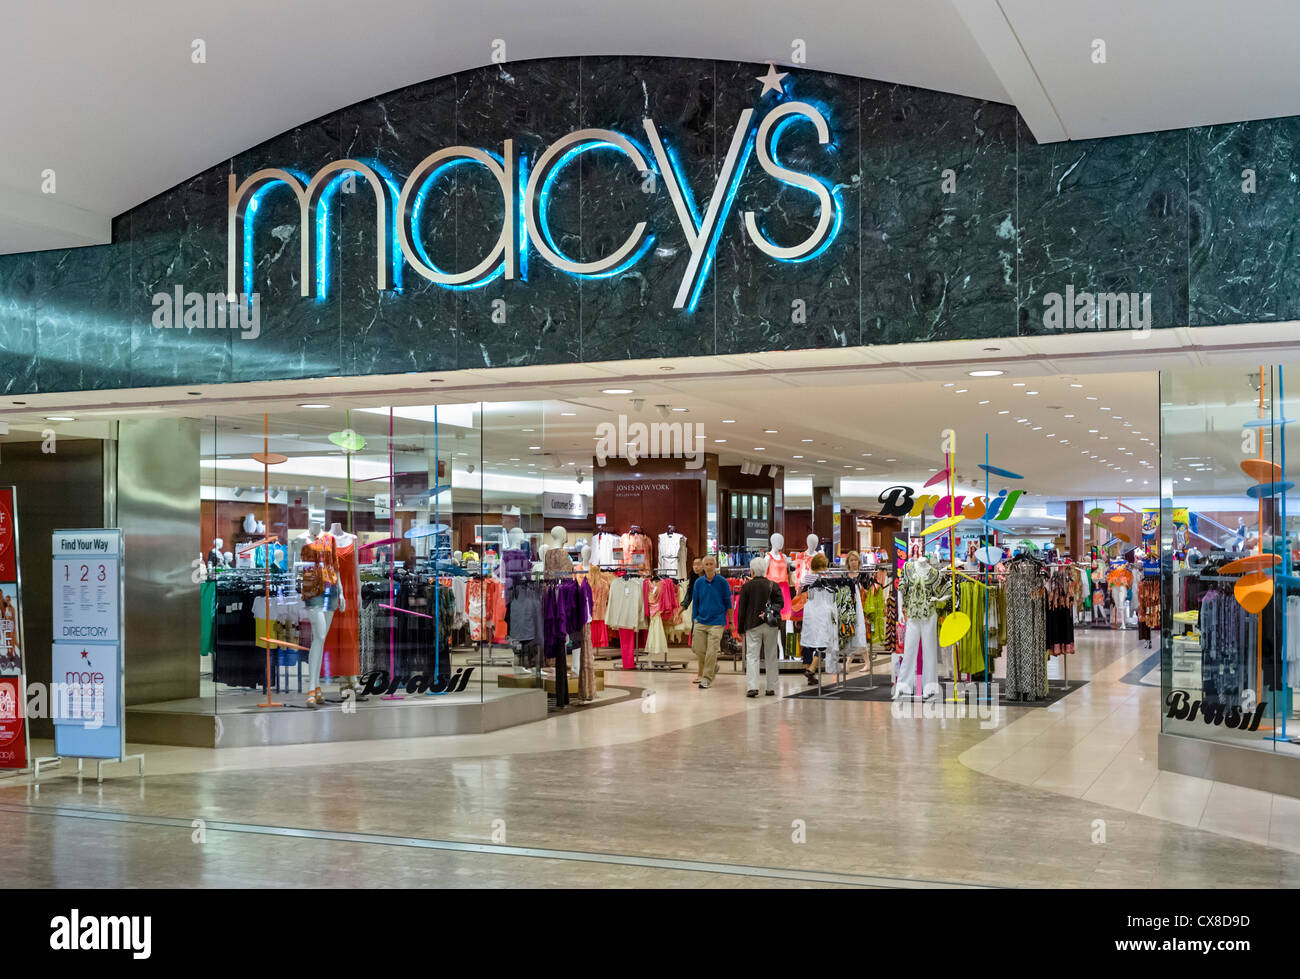 macy 39 s department store in the mall of america bloomington stock photo royalty free image. Black Bedroom Furniture Sets. Home Design Ideas